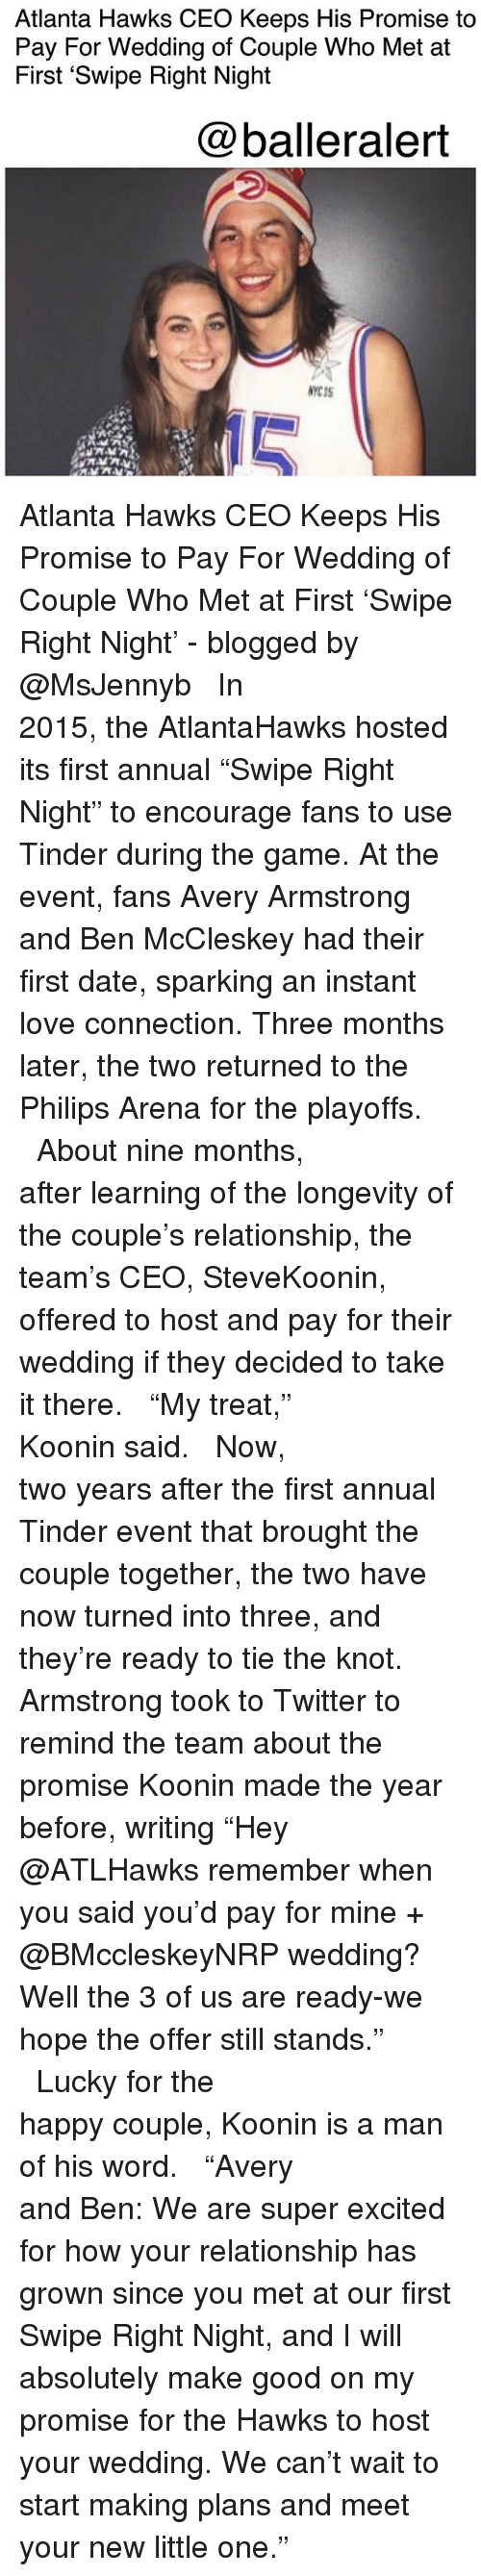 "Knotting: Atlanta Hawks CEO Keeps His Promise to  Pay For Wedding of Couple Who Met at  First 'Swipe Right Night  @balleralert  NYCIS  10 Atlanta Hawks CEO Keeps His Promise to Pay For Wedding of Couple Who Met at First 'Swipe Right Night' - blogged by @MsJennyb ⠀⠀⠀⠀⠀⠀⠀⠀⠀ ⠀⠀⠀⠀⠀⠀⠀⠀⠀ In 2015, the AtlantaHawks hosted its first annual ""Swipe Right Night"" to encourage fans to use Tinder during the game. At the event, fans Avery Armstrong and Ben McCleskey had their first date, sparking an instant love connection. Three months later, the two returned to the Philips Arena for the playoffs. ⠀⠀⠀⠀⠀⠀⠀⠀⠀ ⠀⠀⠀⠀⠀⠀⠀⠀⠀ About nine months, after learning of the longevity of the couple's relationship, the team's CEO, SteveKoonin, offered to host and pay for their wedding if they decided to take it there. ⠀⠀⠀⠀⠀⠀⠀⠀⠀ ⠀⠀⠀⠀⠀⠀⠀⠀⠀ ""My treat,"" Koonin said. ⠀⠀⠀⠀⠀⠀⠀⠀⠀ ⠀⠀⠀⠀⠀⠀⠀⠀⠀ Now, two years after the first annual Tinder event that brought the couple together, the two have now turned into three, and they're ready to tie the knot. Armstrong took to Twitter to remind the team about the promise Koonin made the year before, writing ""Hey @ATLHawks remember when you said you'd pay for mine + @BMccleskeyNRP wedding? Well the 3 of us are ready-we hope the offer still stands."" ⠀⠀⠀⠀⠀⠀⠀⠀⠀ ⠀⠀⠀⠀⠀⠀⠀⠀⠀ Lucky for the happy couple, Koonin is a man of his word. ⠀⠀⠀⠀⠀⠀⠀⠀⠀ ⠀⠀⠀⠀⠀⠀⠀⠀⠀ ""Avery and Ben: We are super excited for how your relationship has grown since you met at our first Swipe Right Night, and I will absolutely make good on my promise for the Hawks to host your wedding. We can't wait to start making plans and meet your new little one."""